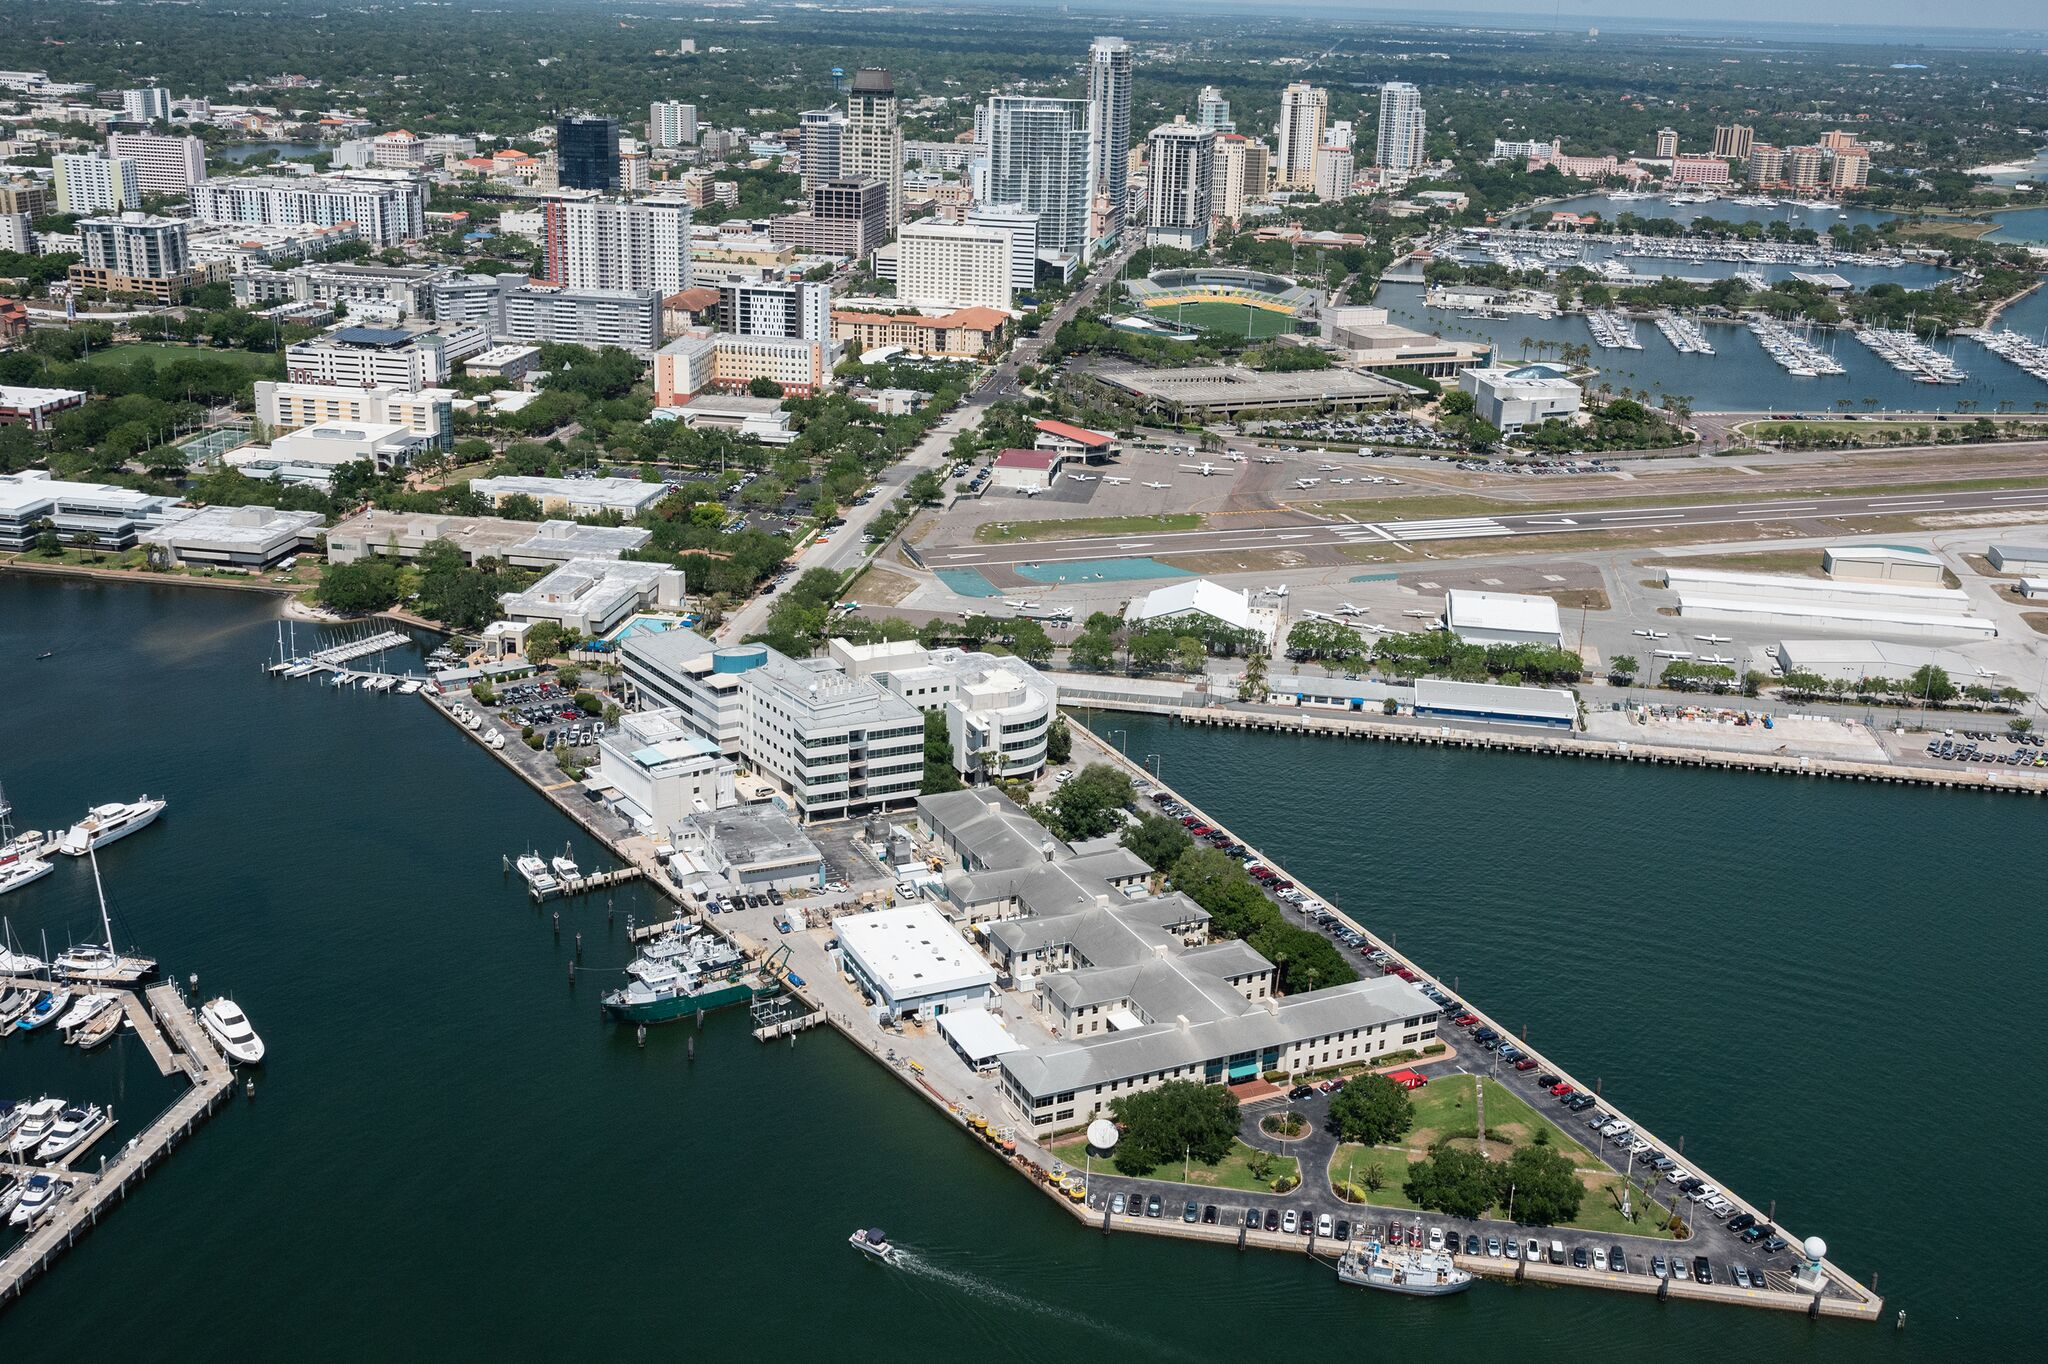 A bird's-eye view of USF College of Marine Science